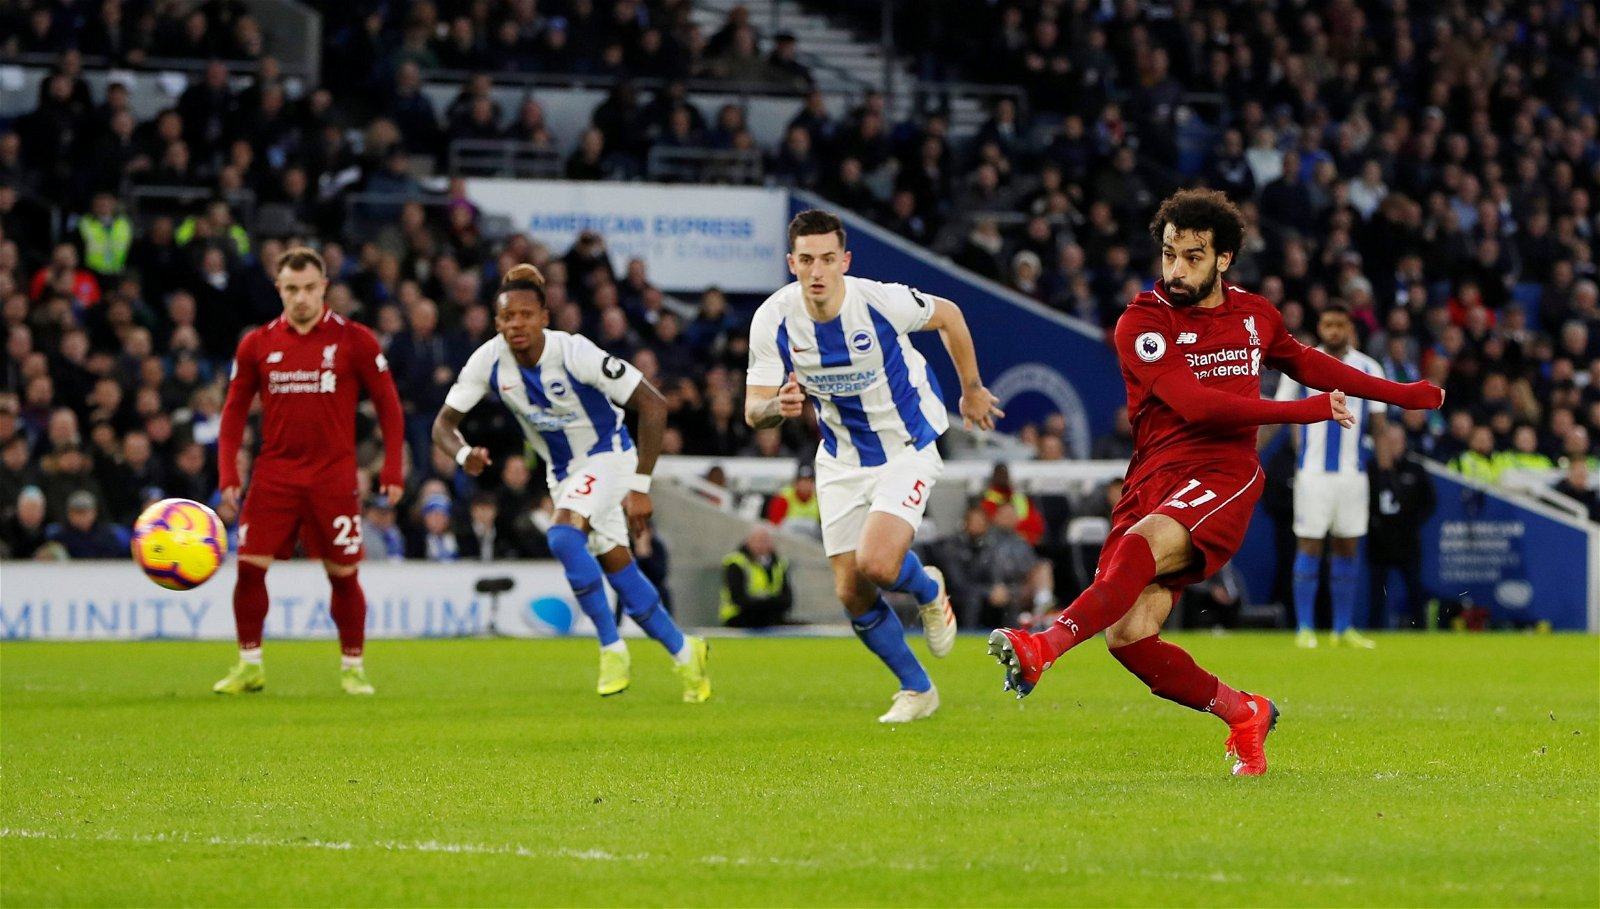 Liverpool's Mohamed Salah scores their first goal from the penalty spot v Brighton